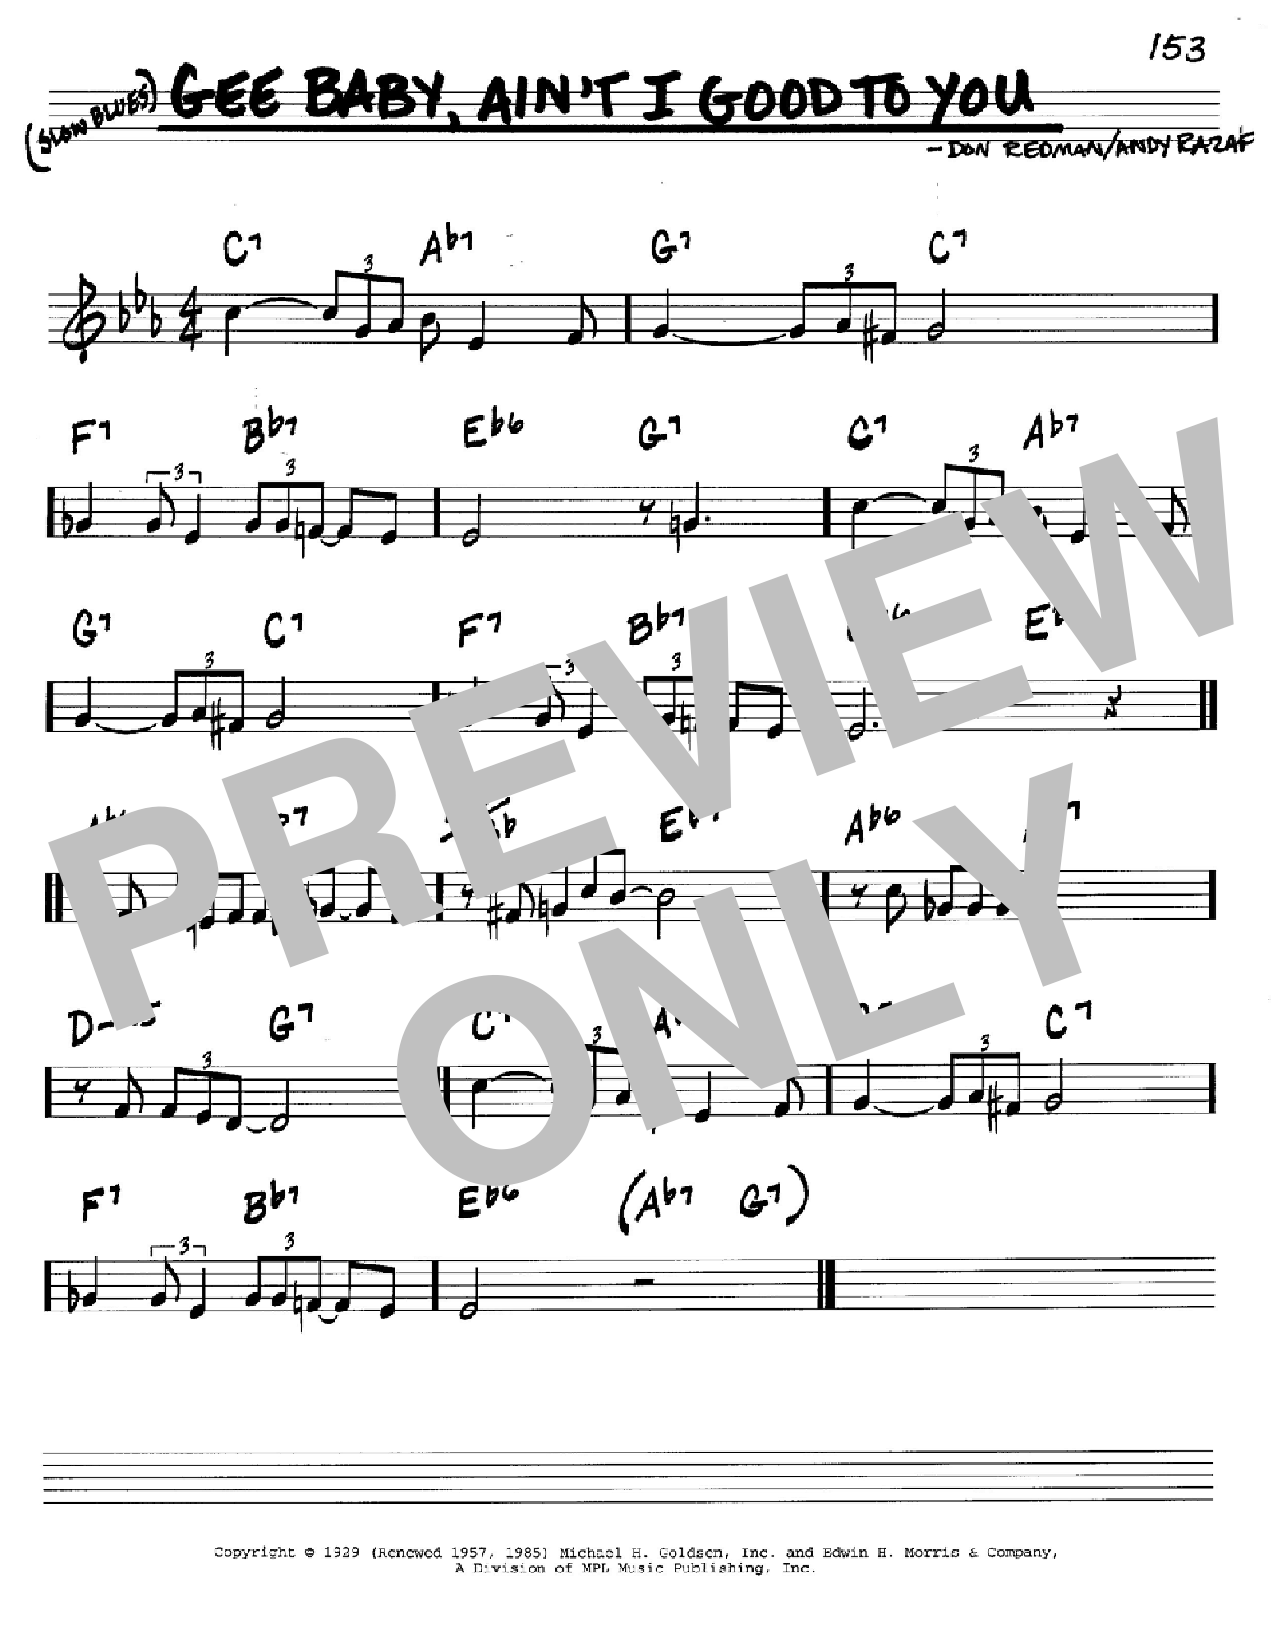 Gee Baby, Ain't I Good To You Sheet Music